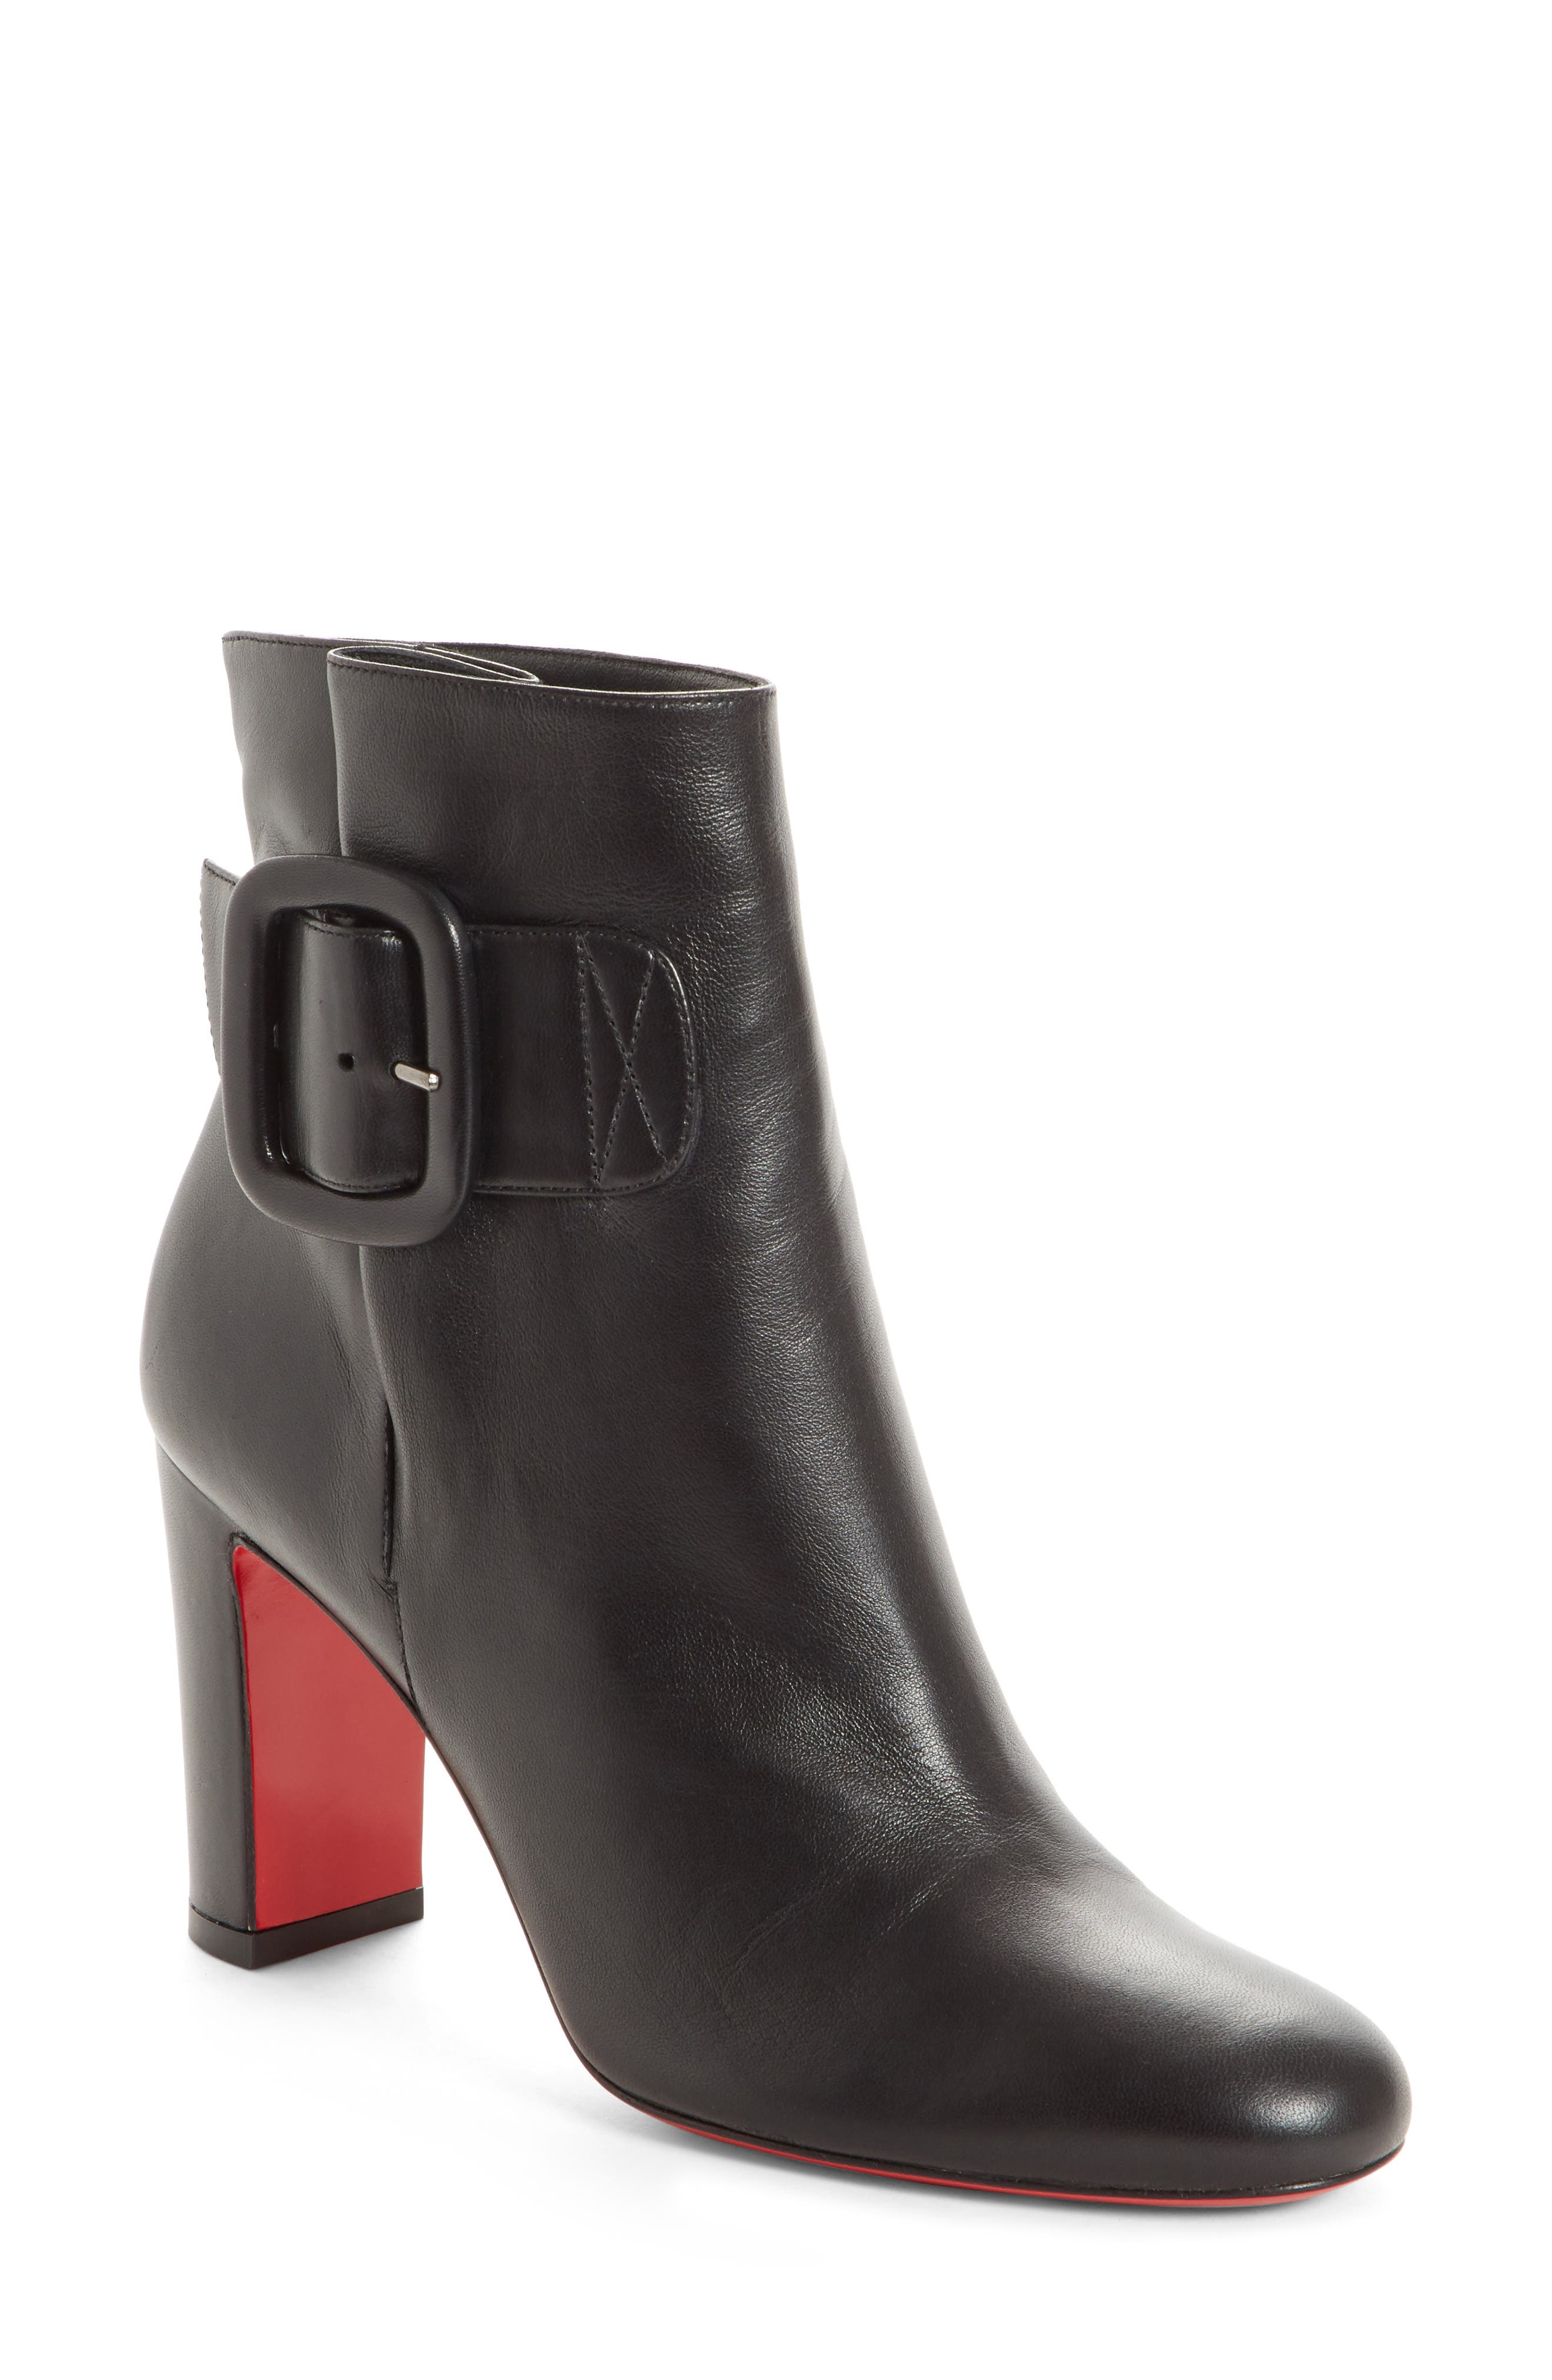 CHRISTIAN LOUBOUTIN Tres Olivia Buckle Bootie, Main, color, BLACK LEATHER